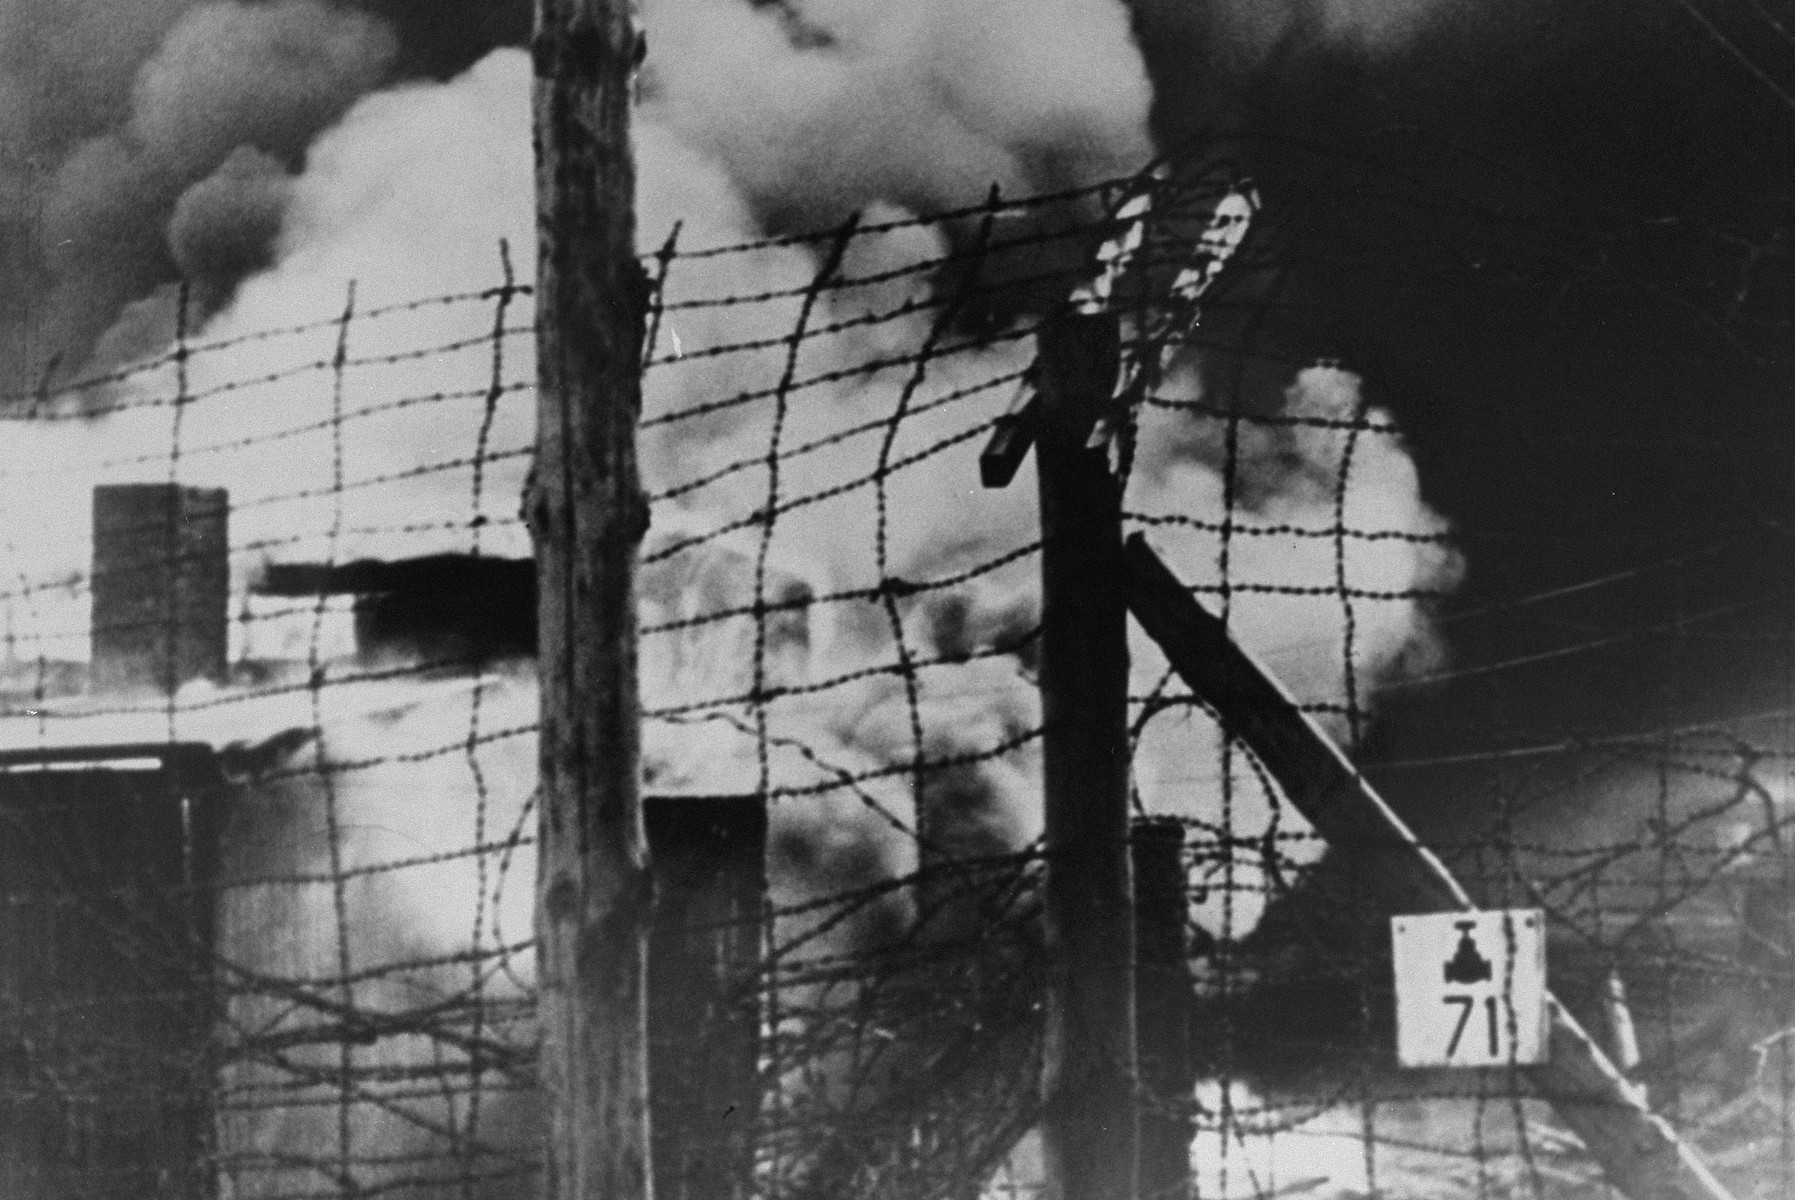 View of the burning barracks in camp no. 1 in Bergen-Belsen to prevent the spread of typhus.